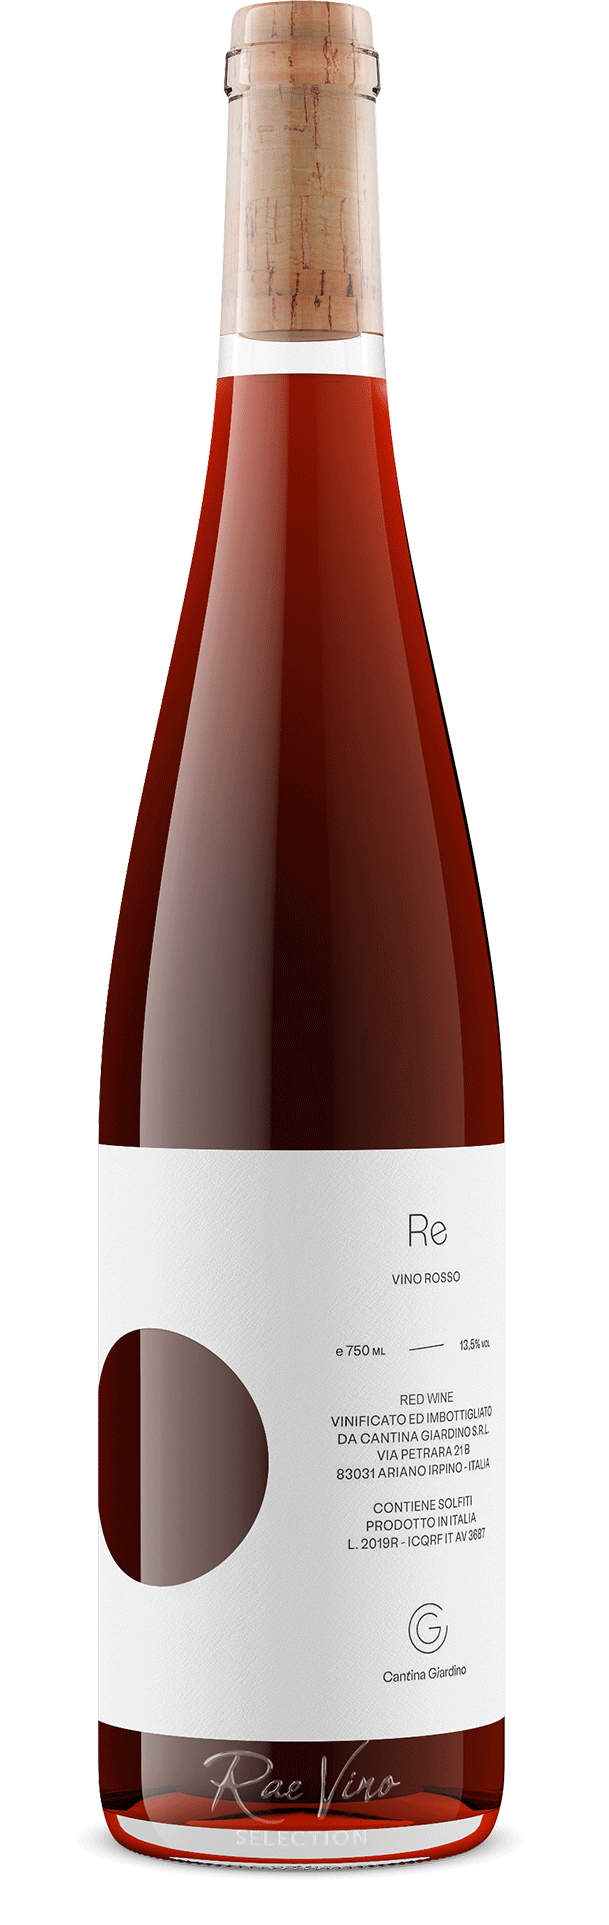 Cantina Giardino : 'Re' Rosso : Red Blend | 2019